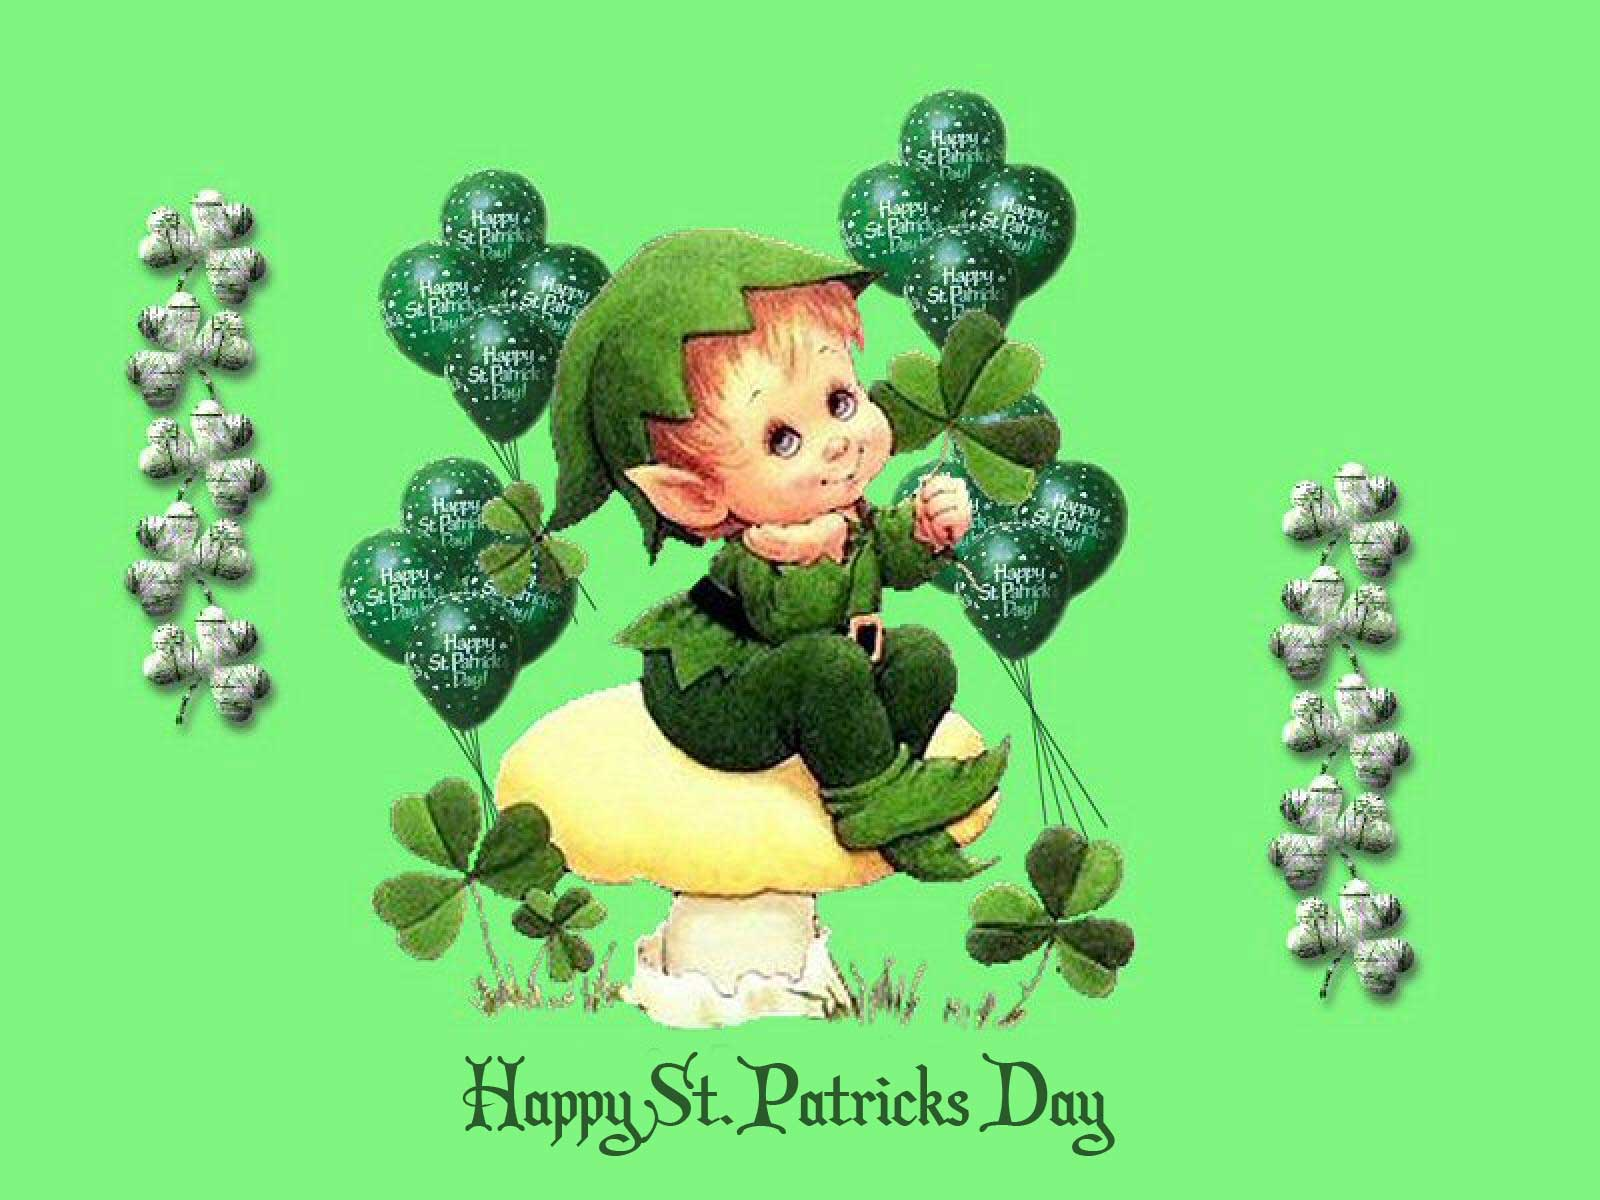 ... - Movie St Patricks Day Wallpaper Images Sons Of Anarchy Wallpaper